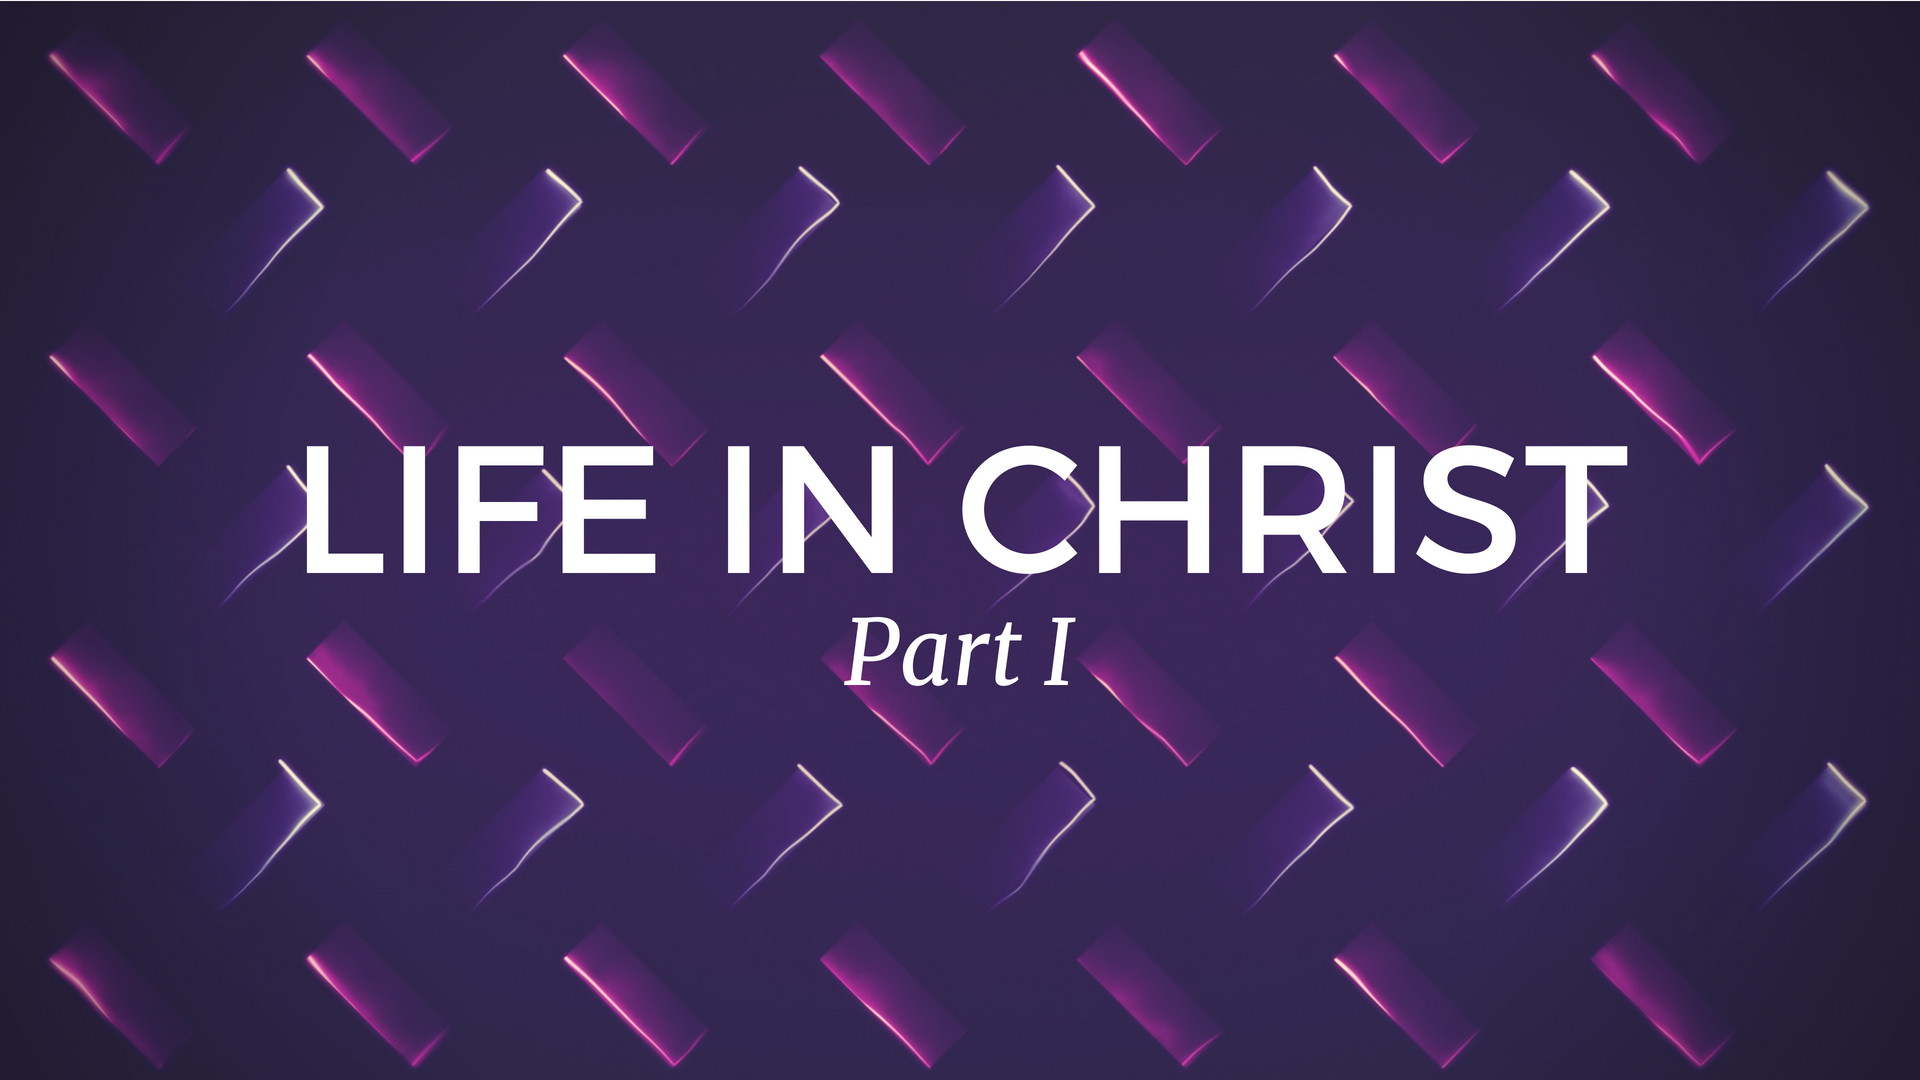 Life in Christ (part I)